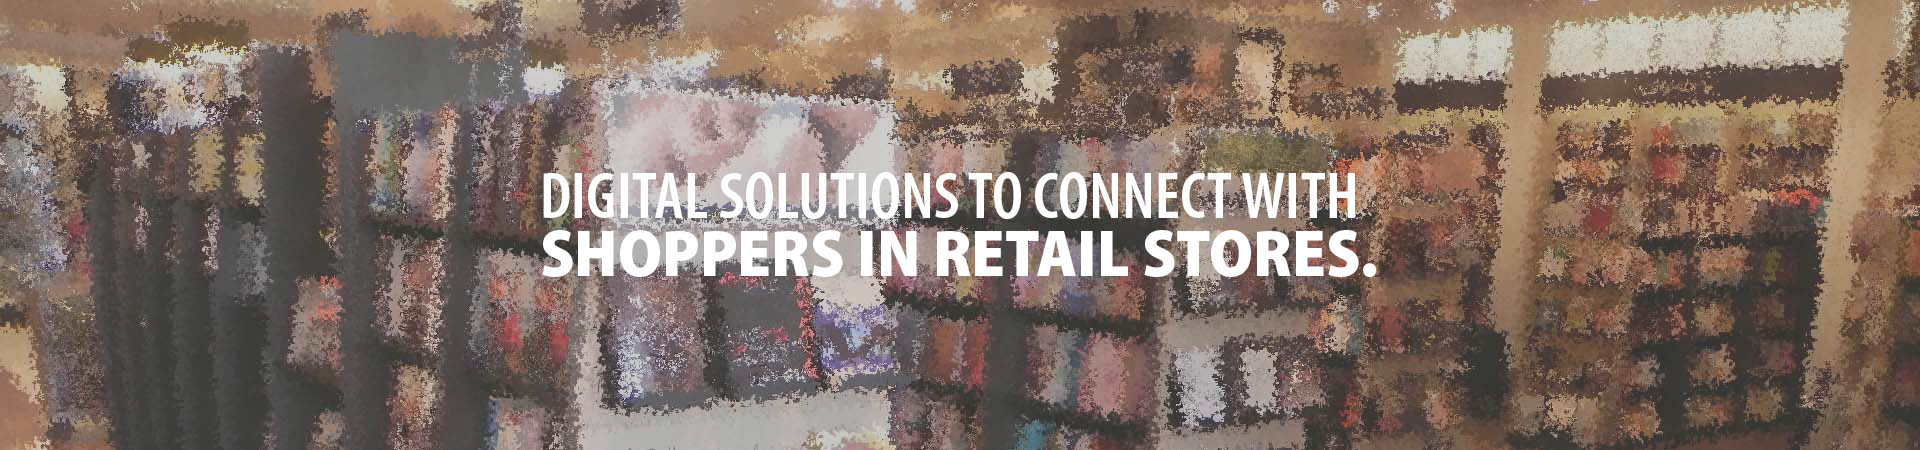 Digital solutions to connect with shoppers in retail stores.